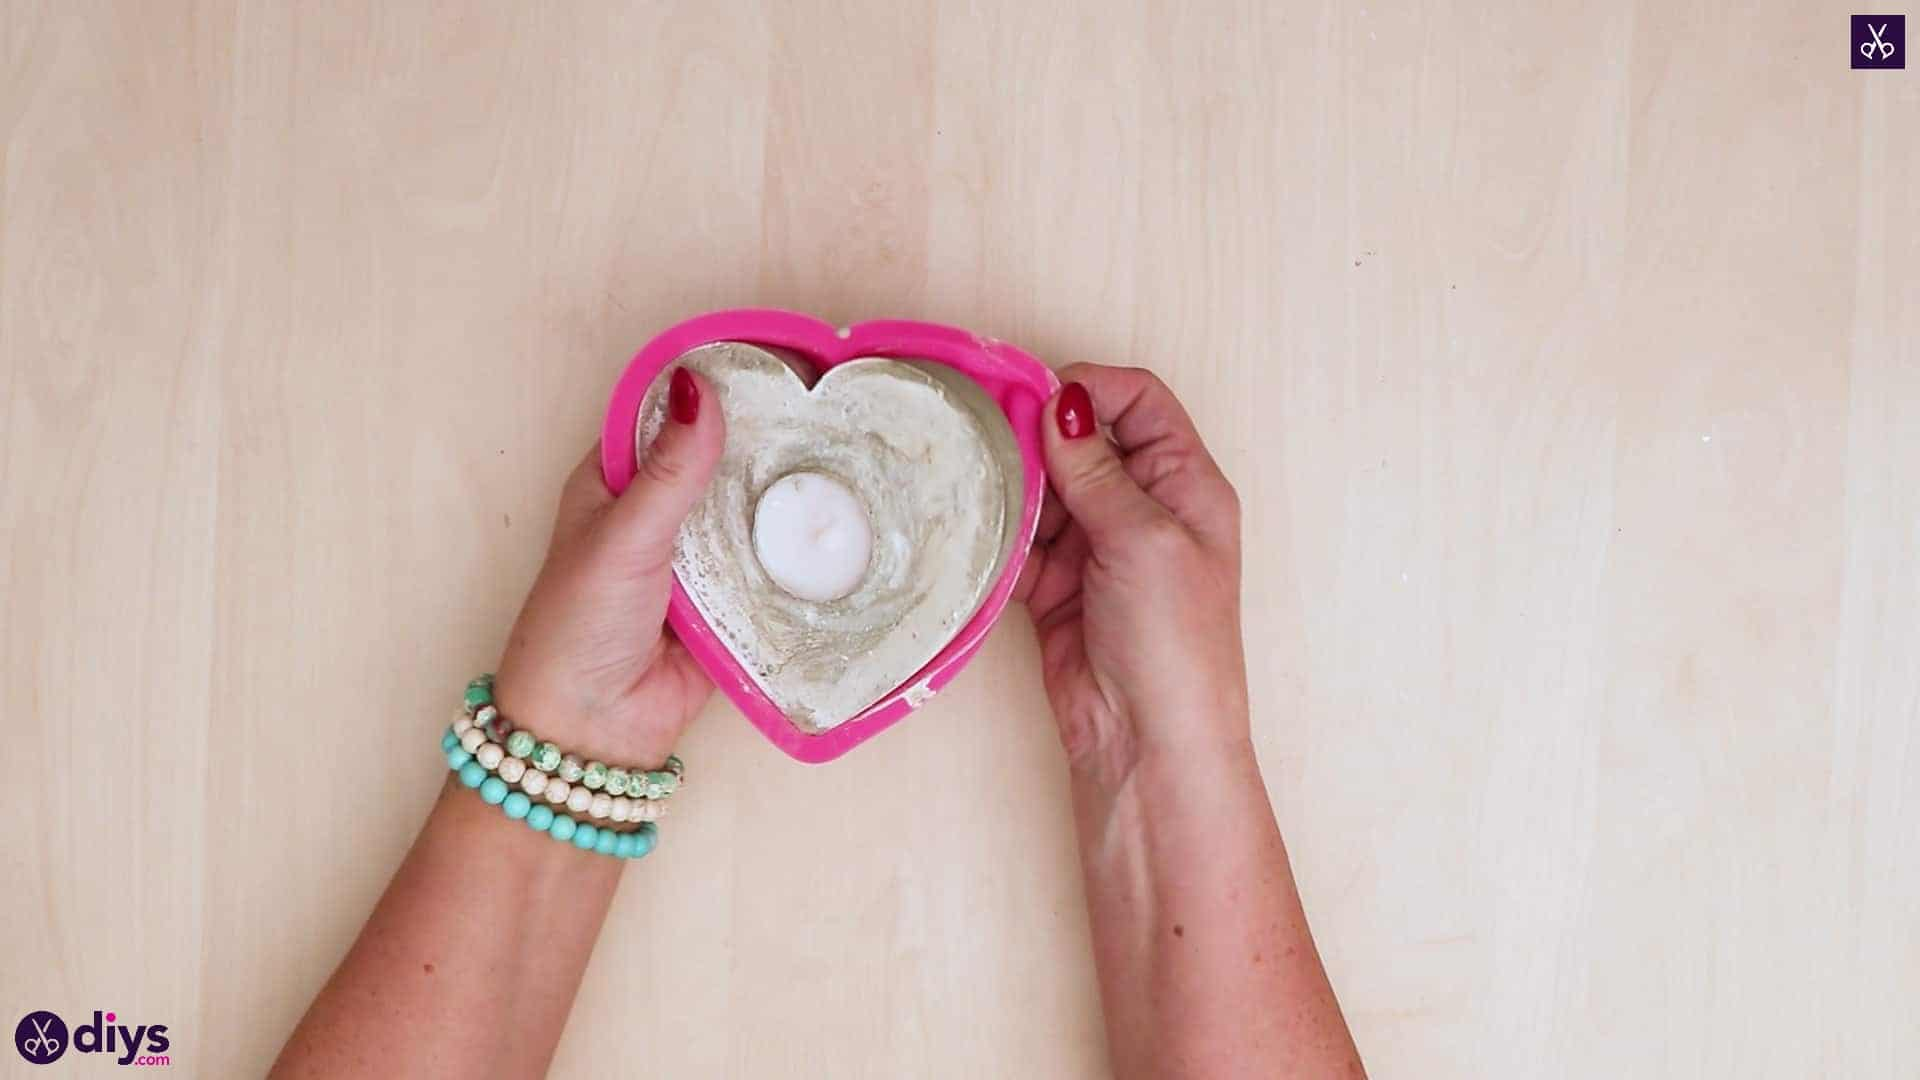 Diy concrete heart candle holder remove mold